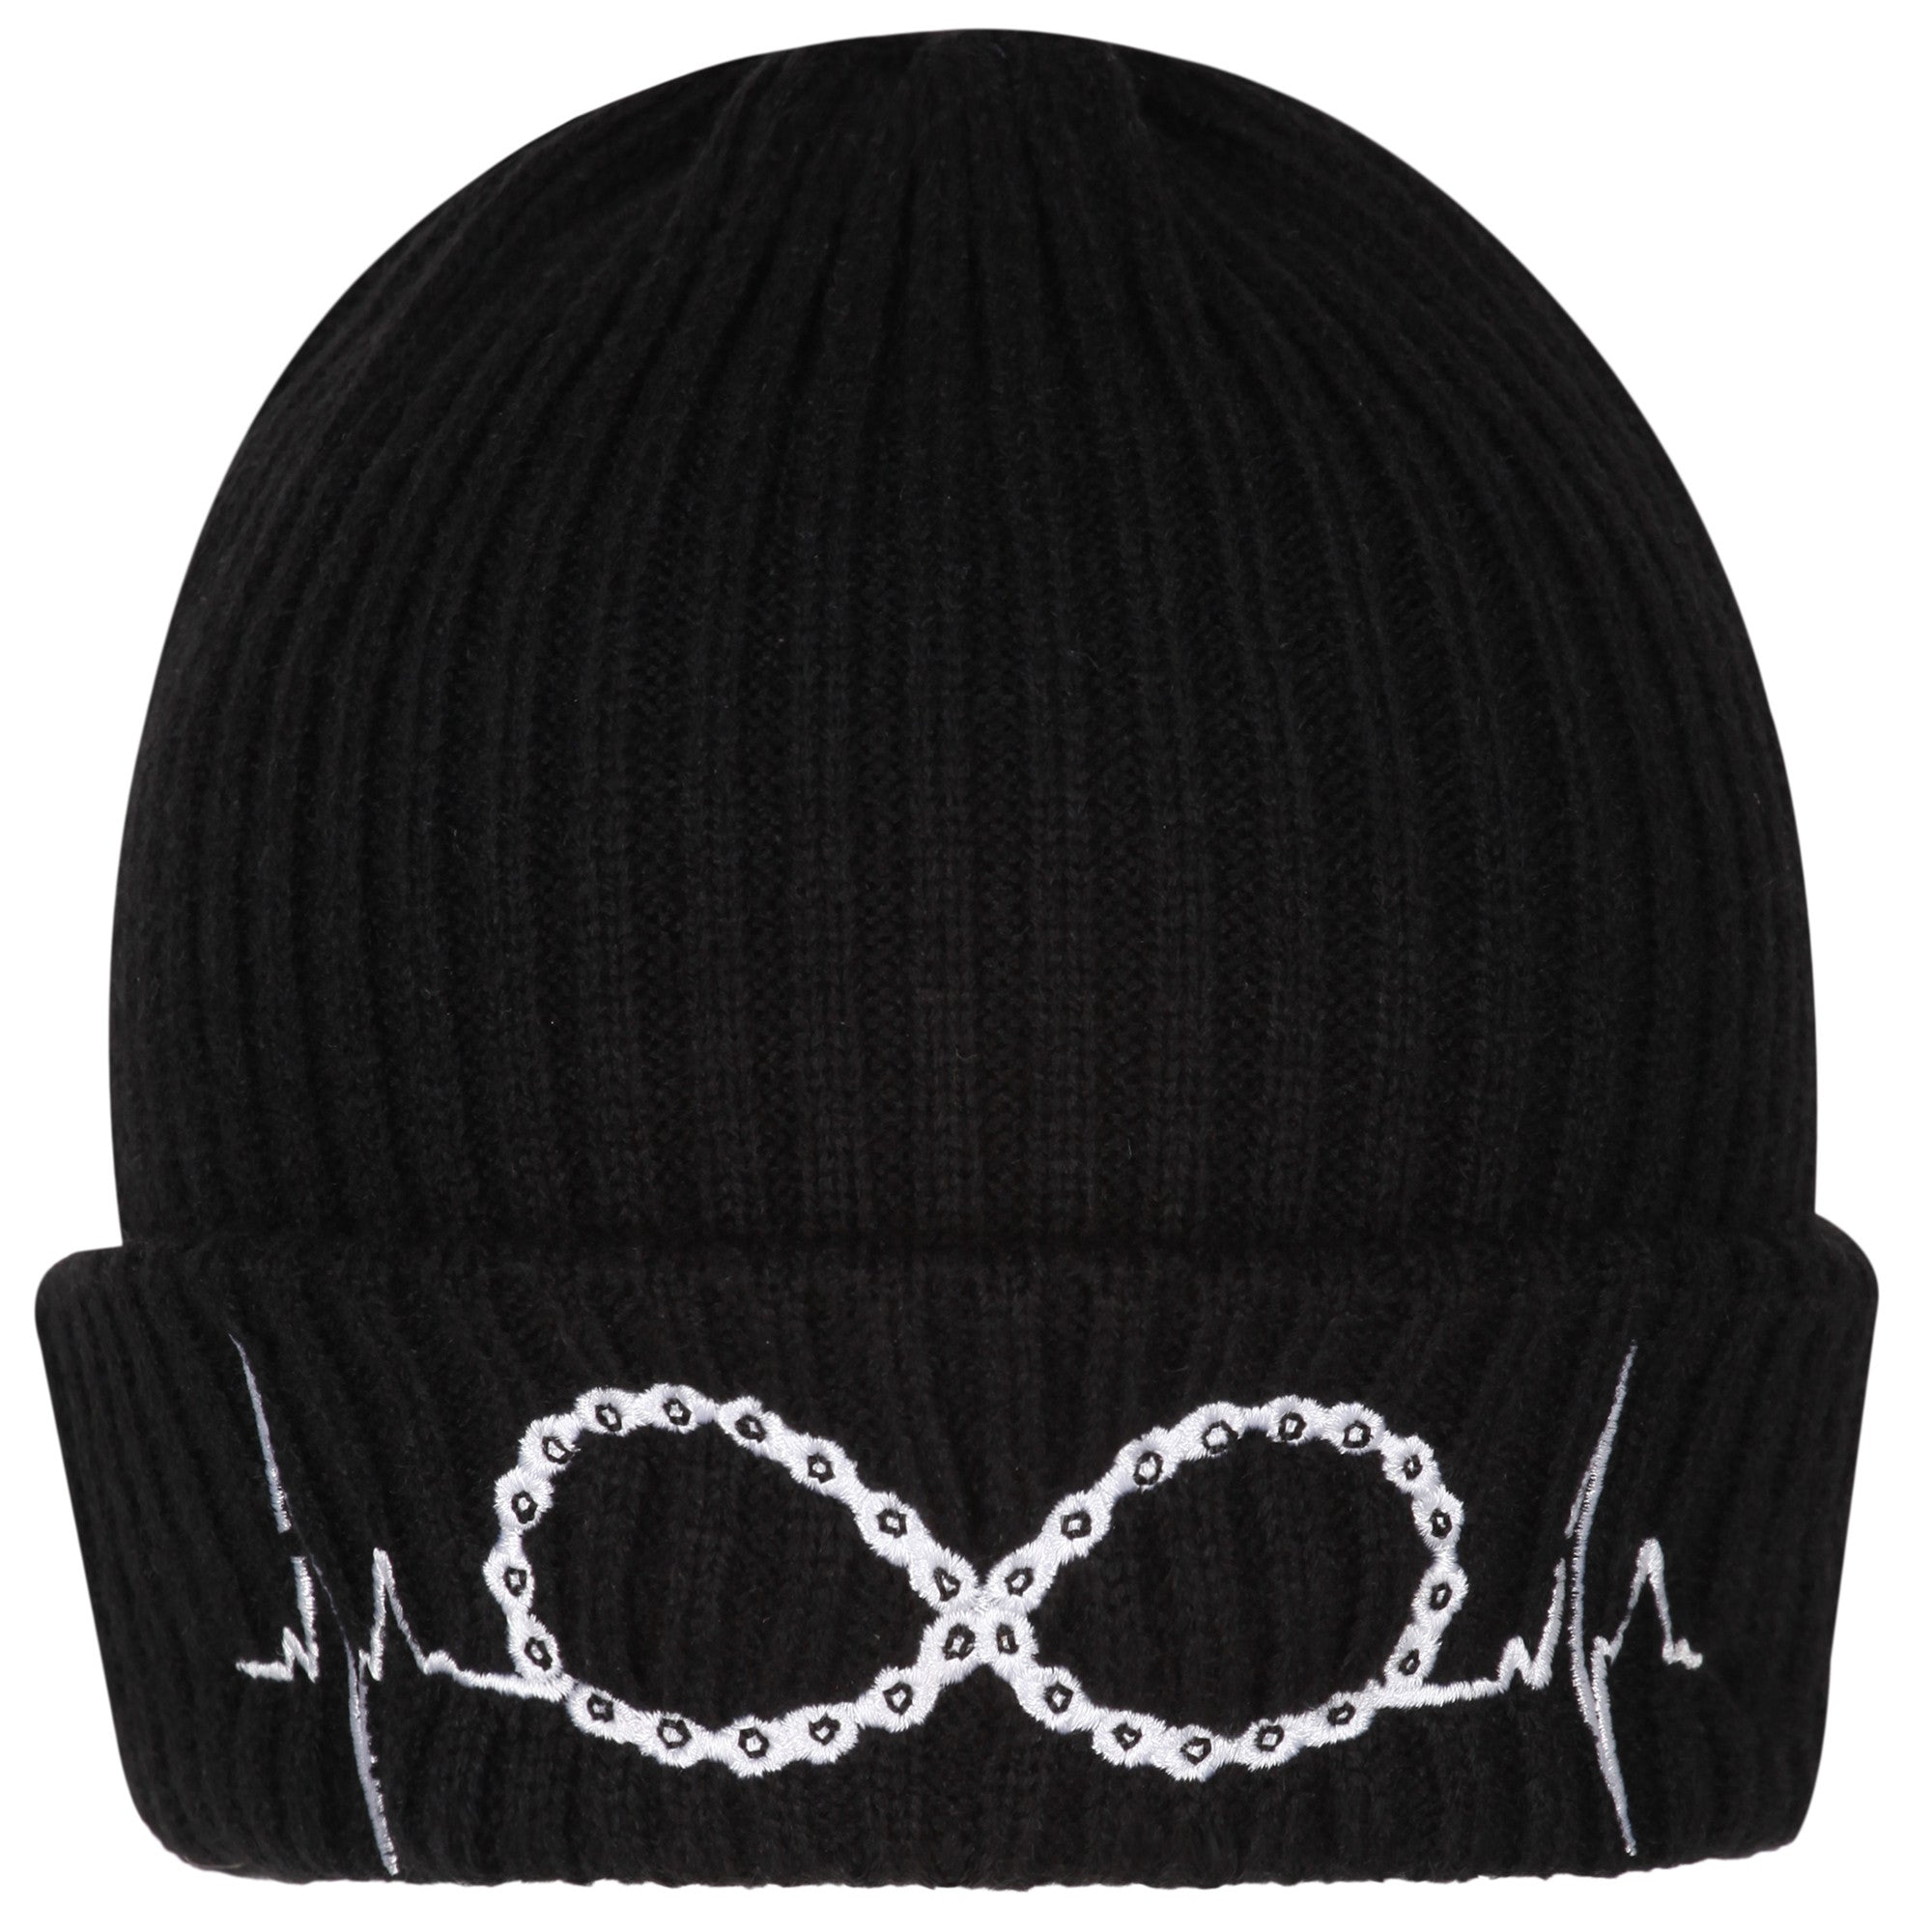 Ride Without Limits Signature Beanie